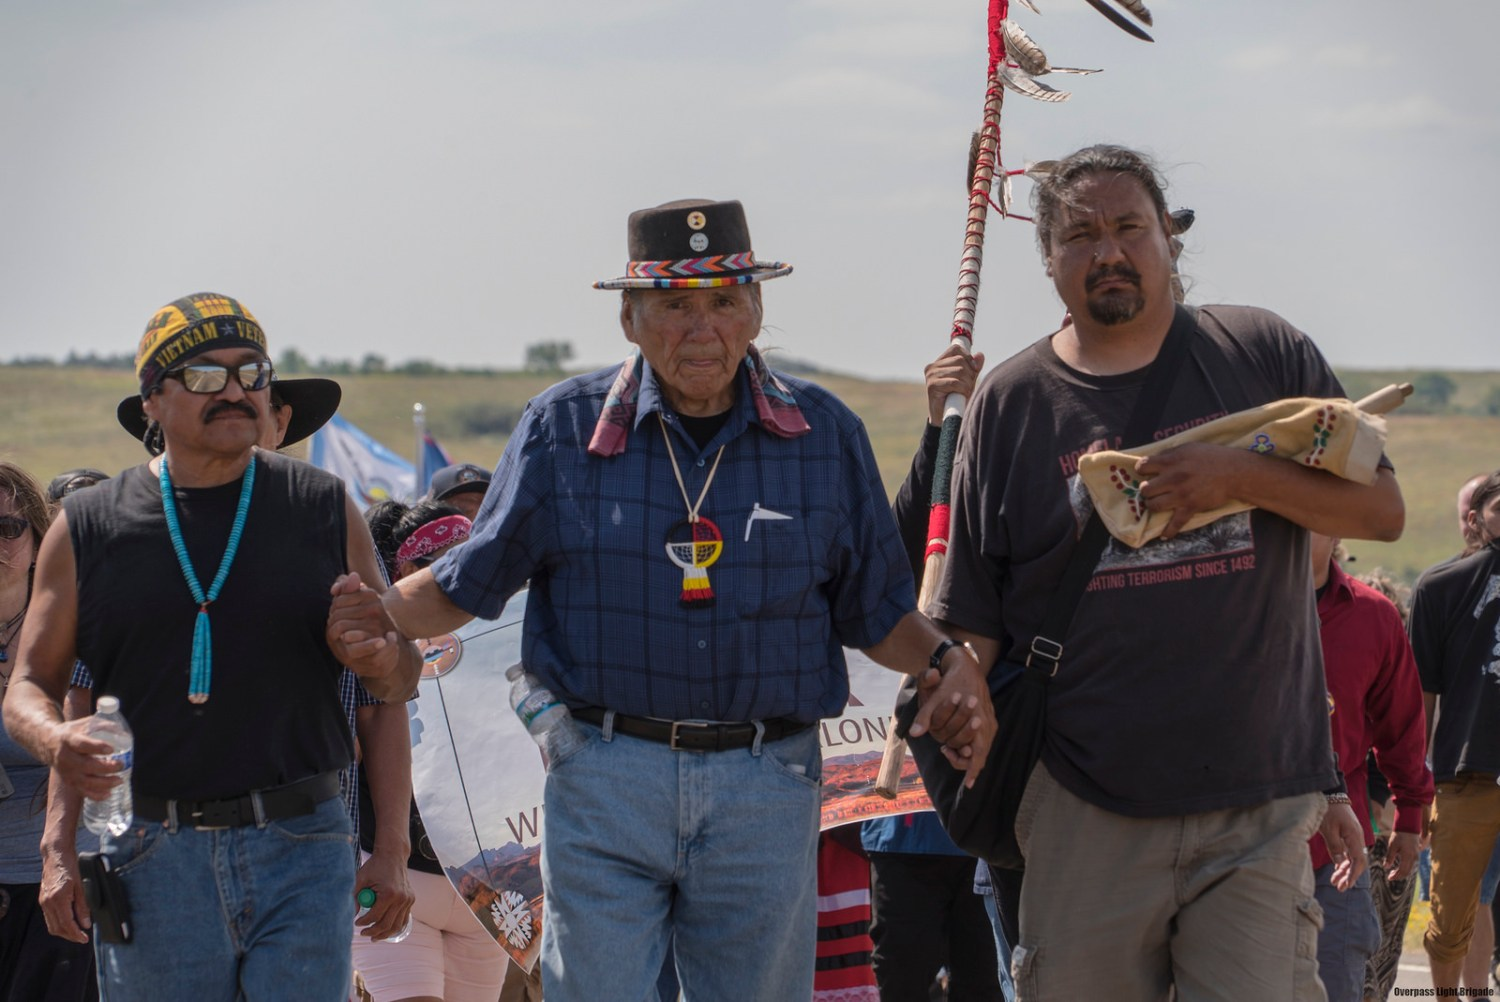 The Standing Rock Sioux Tribe's campaign to block the Dakota Access Pipeline from crossing the Missouri River has attracted support from across the United States, and around the world. Photograph by, Joe Brusky